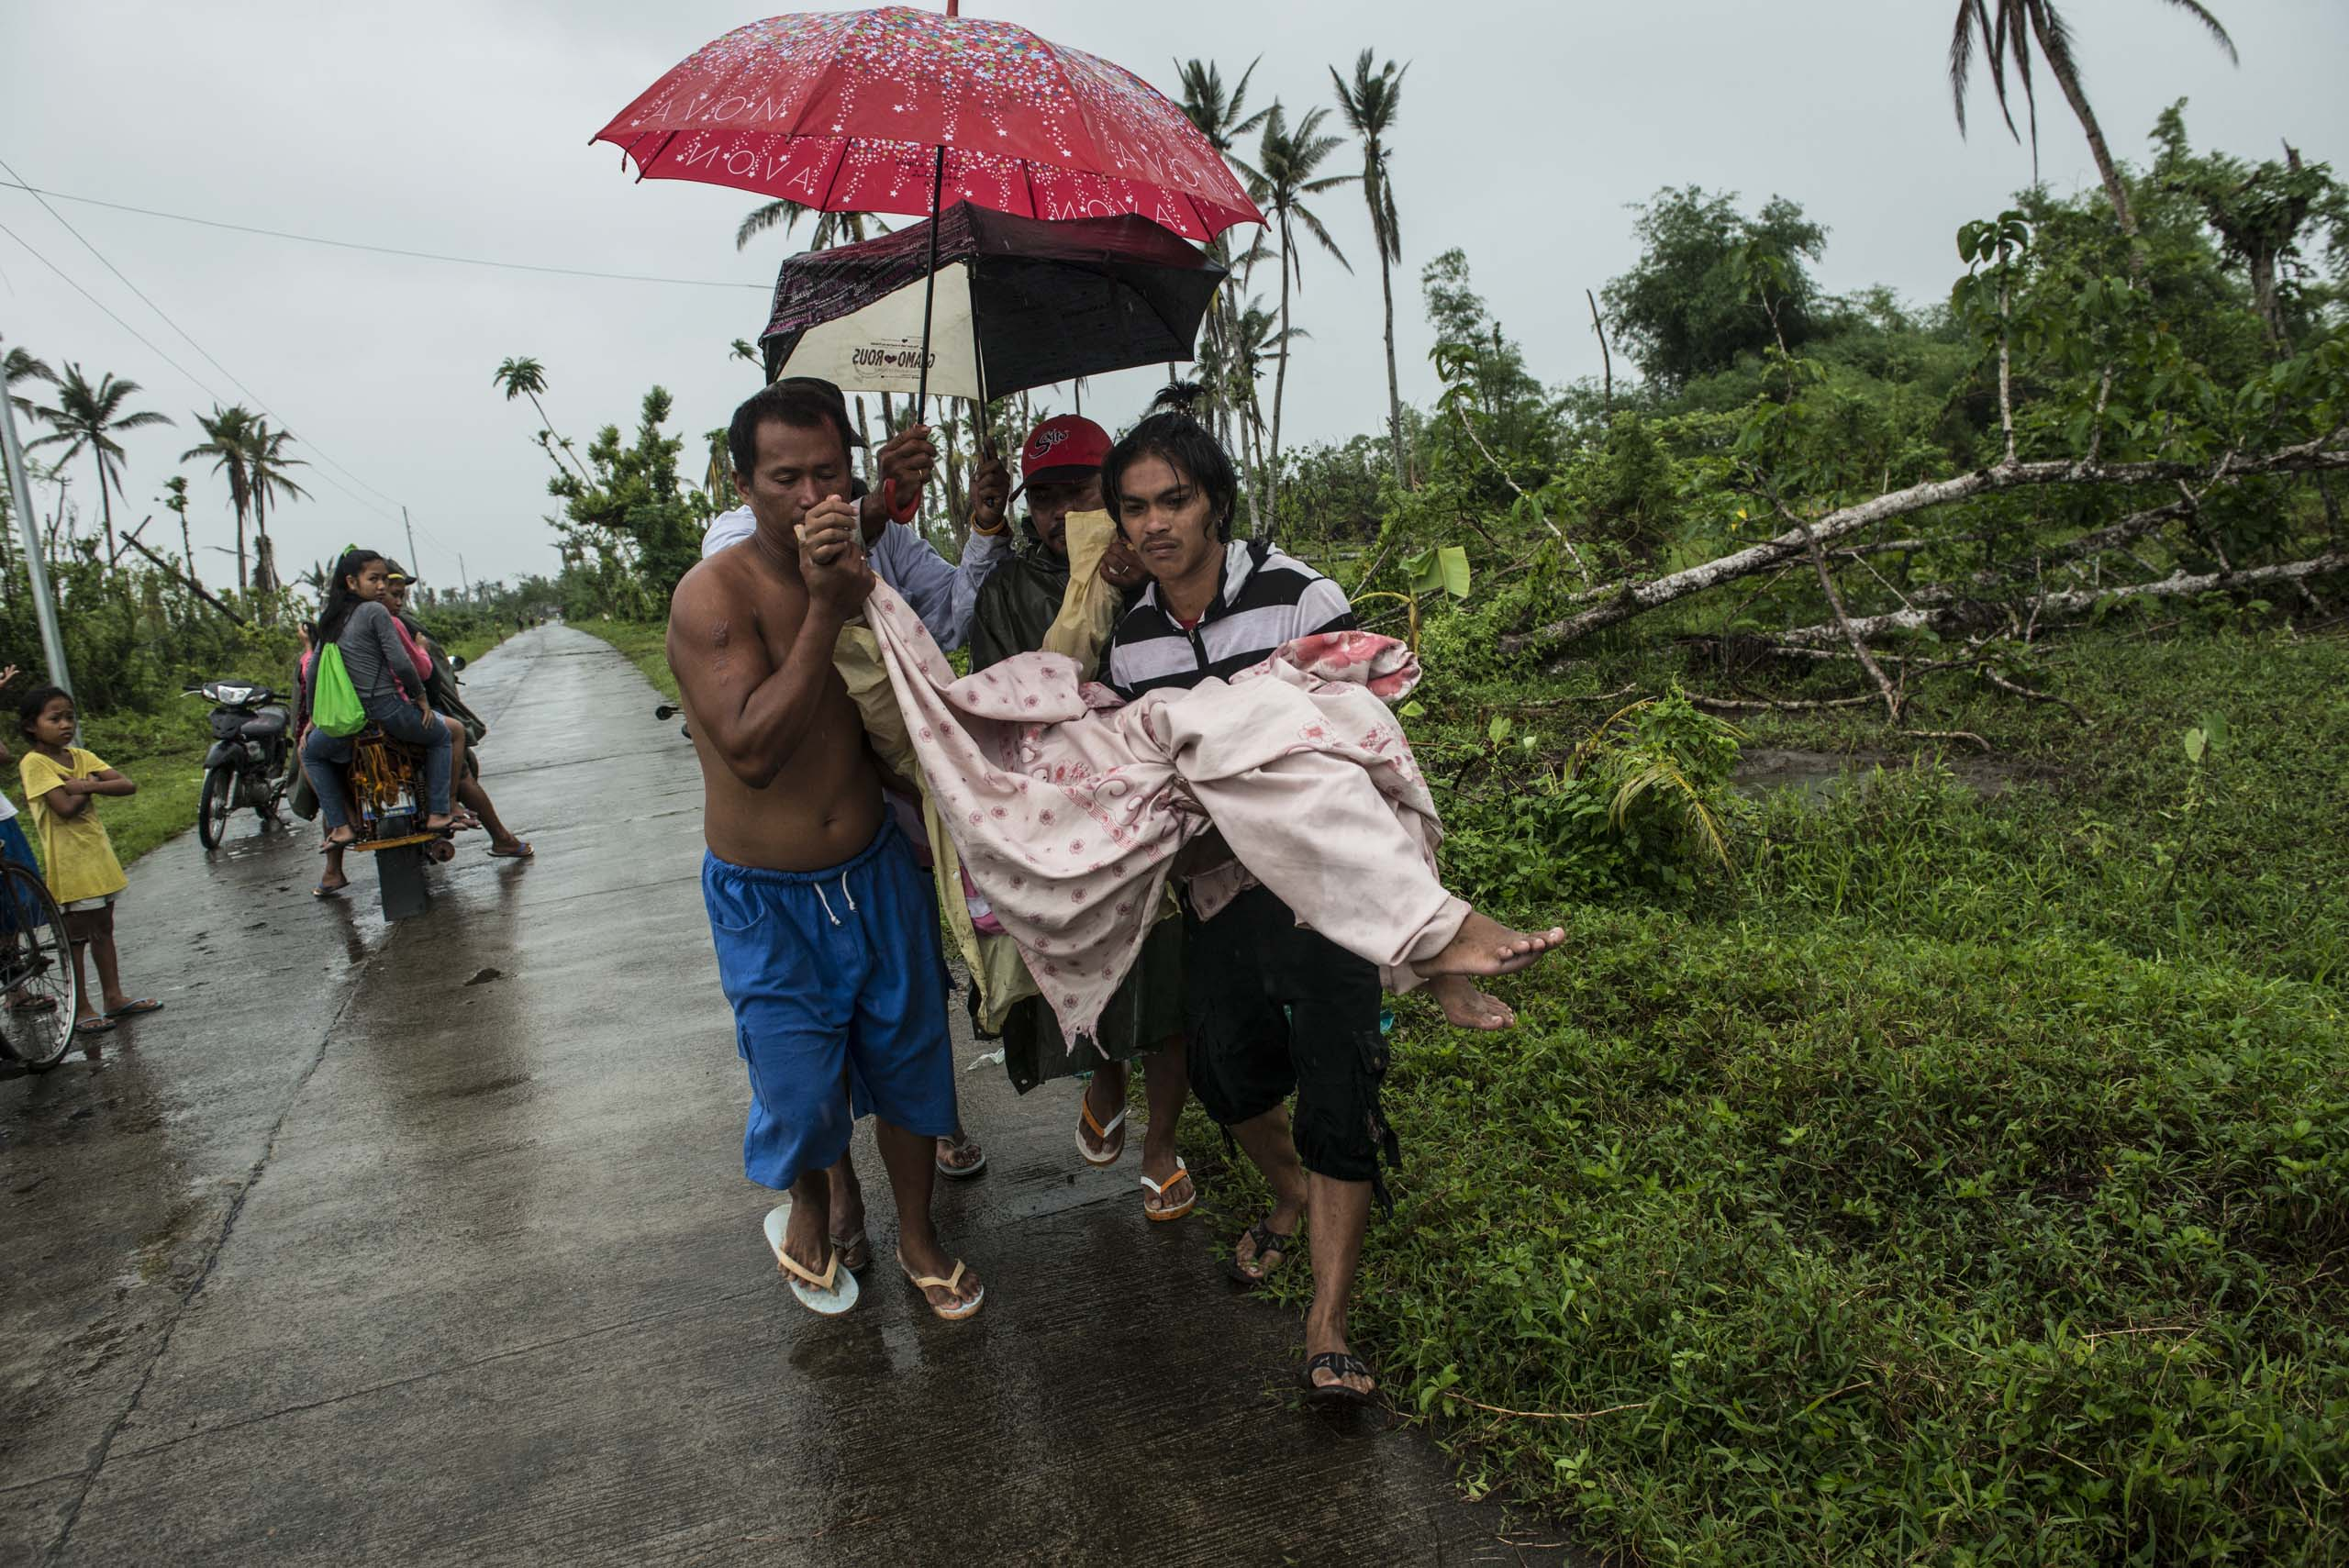 Jan.11, 2014: After the baby is born, Bacate and passersby help carry Analyn Pesado and the baby to a pickup truck on the road outside of Tacloban.